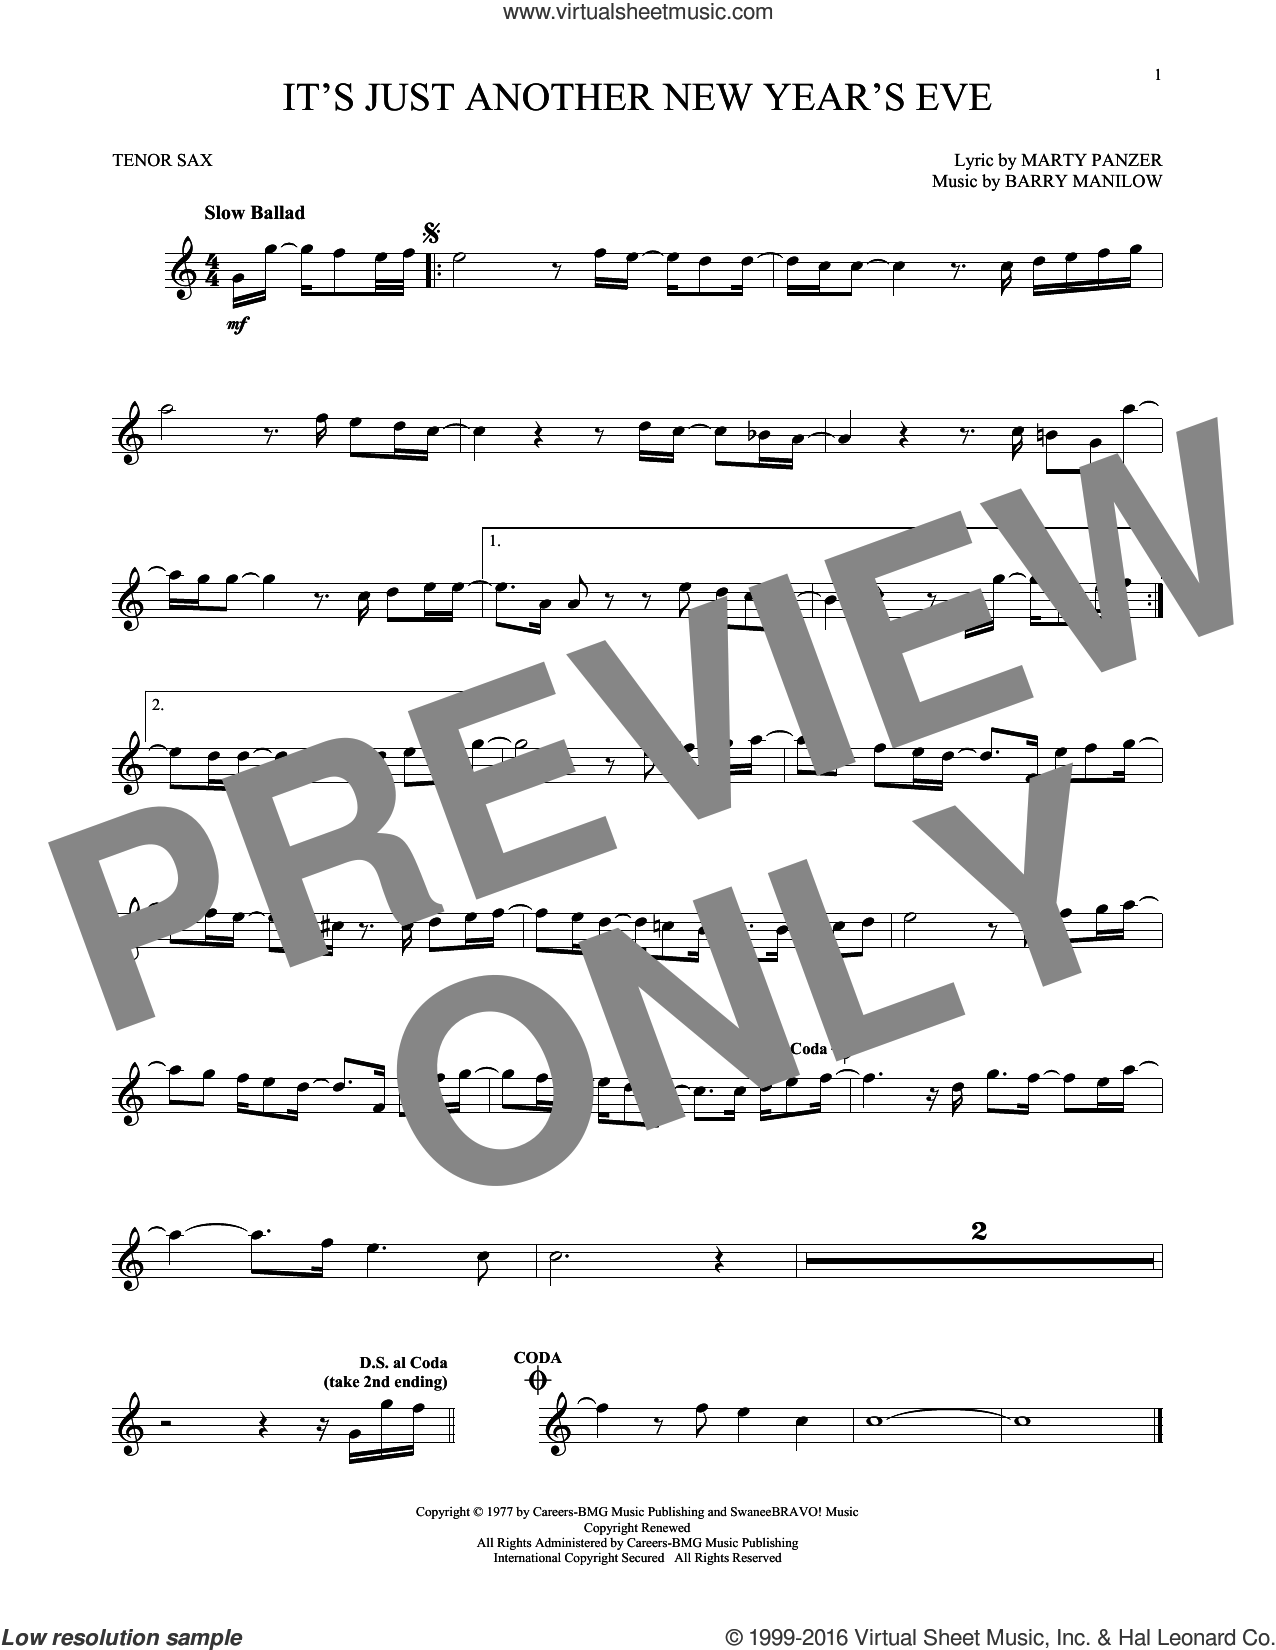 It's Just Another New Year's Eve sheet music for tenor saxophone solo by Barry Manilow and Marty Panzer, intermediate skill level